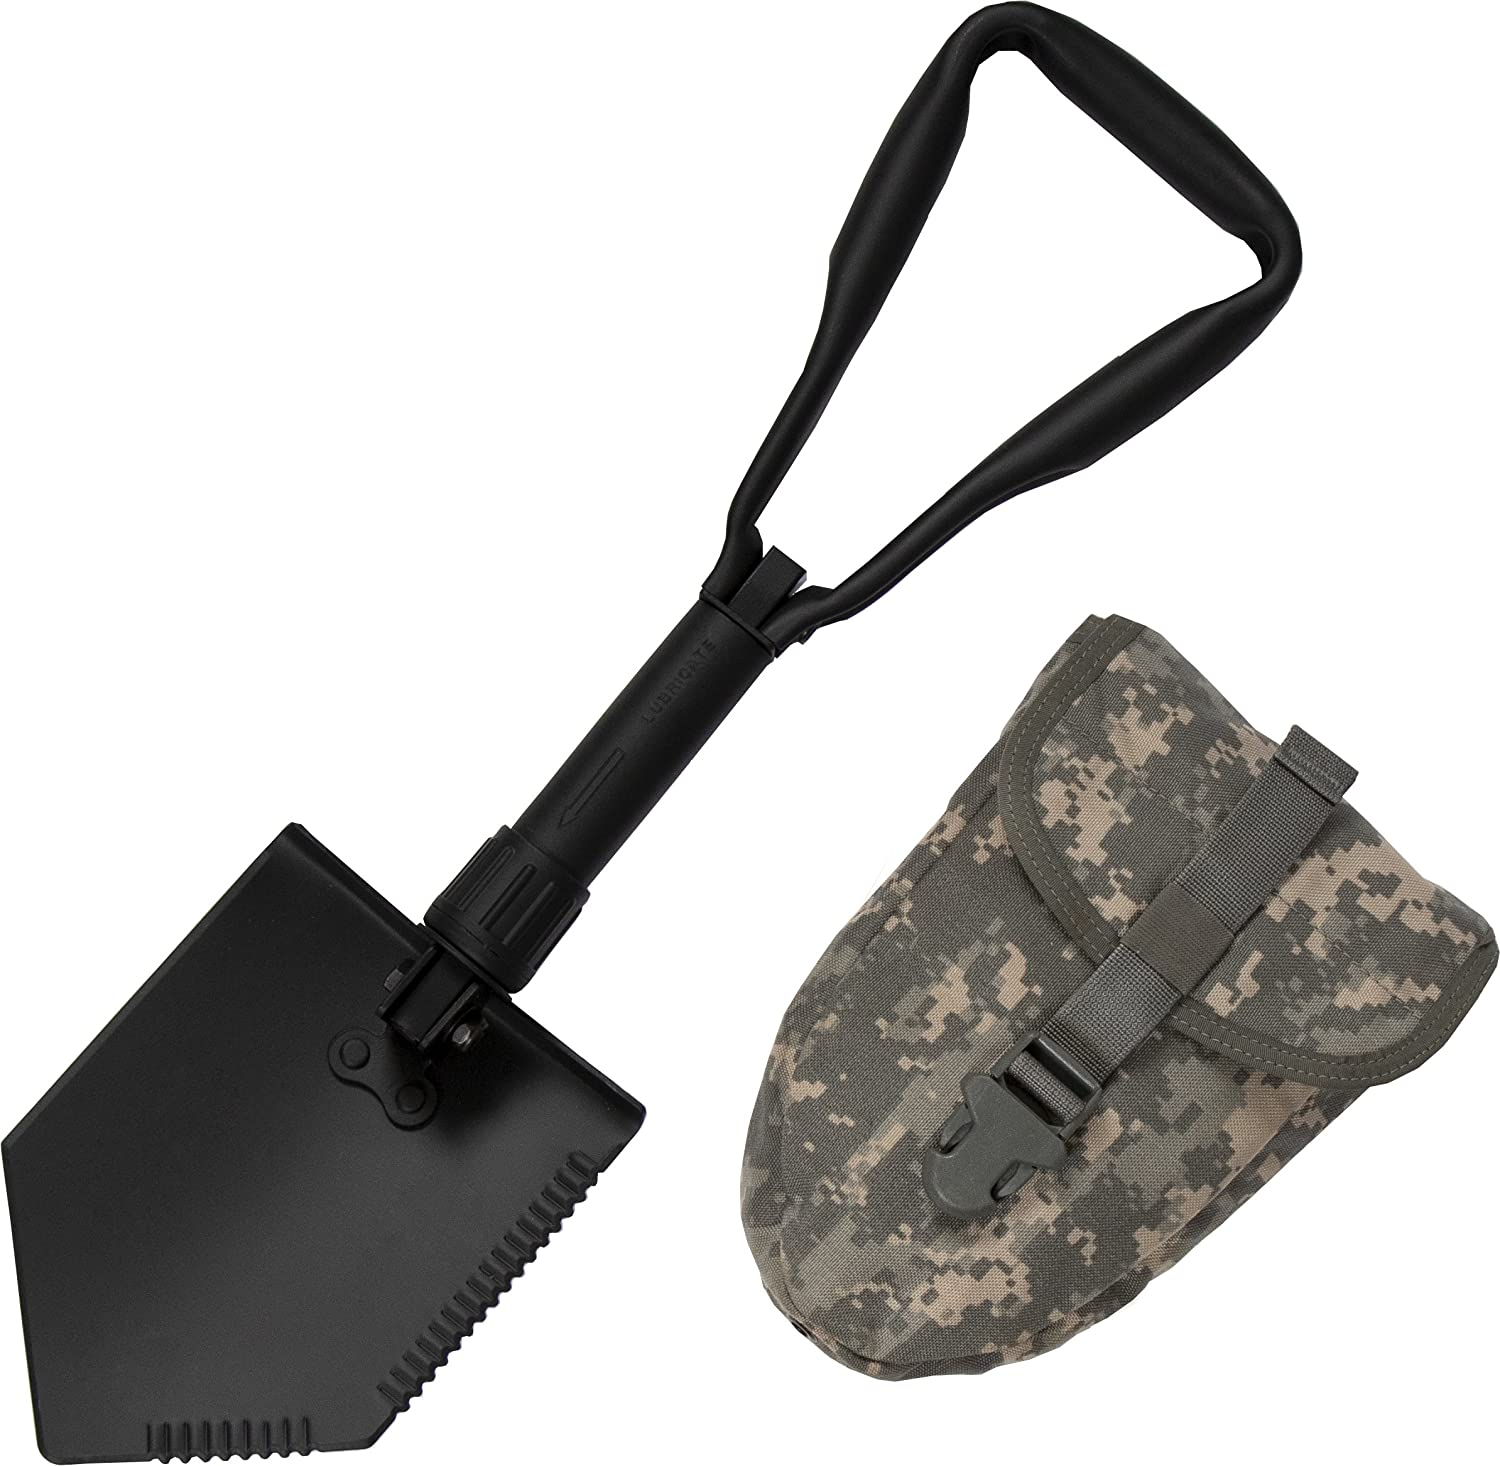 US Military Original Issue E-Tool Entrenching Shovel with ACU OR MultiCam Carrying Case Pouch